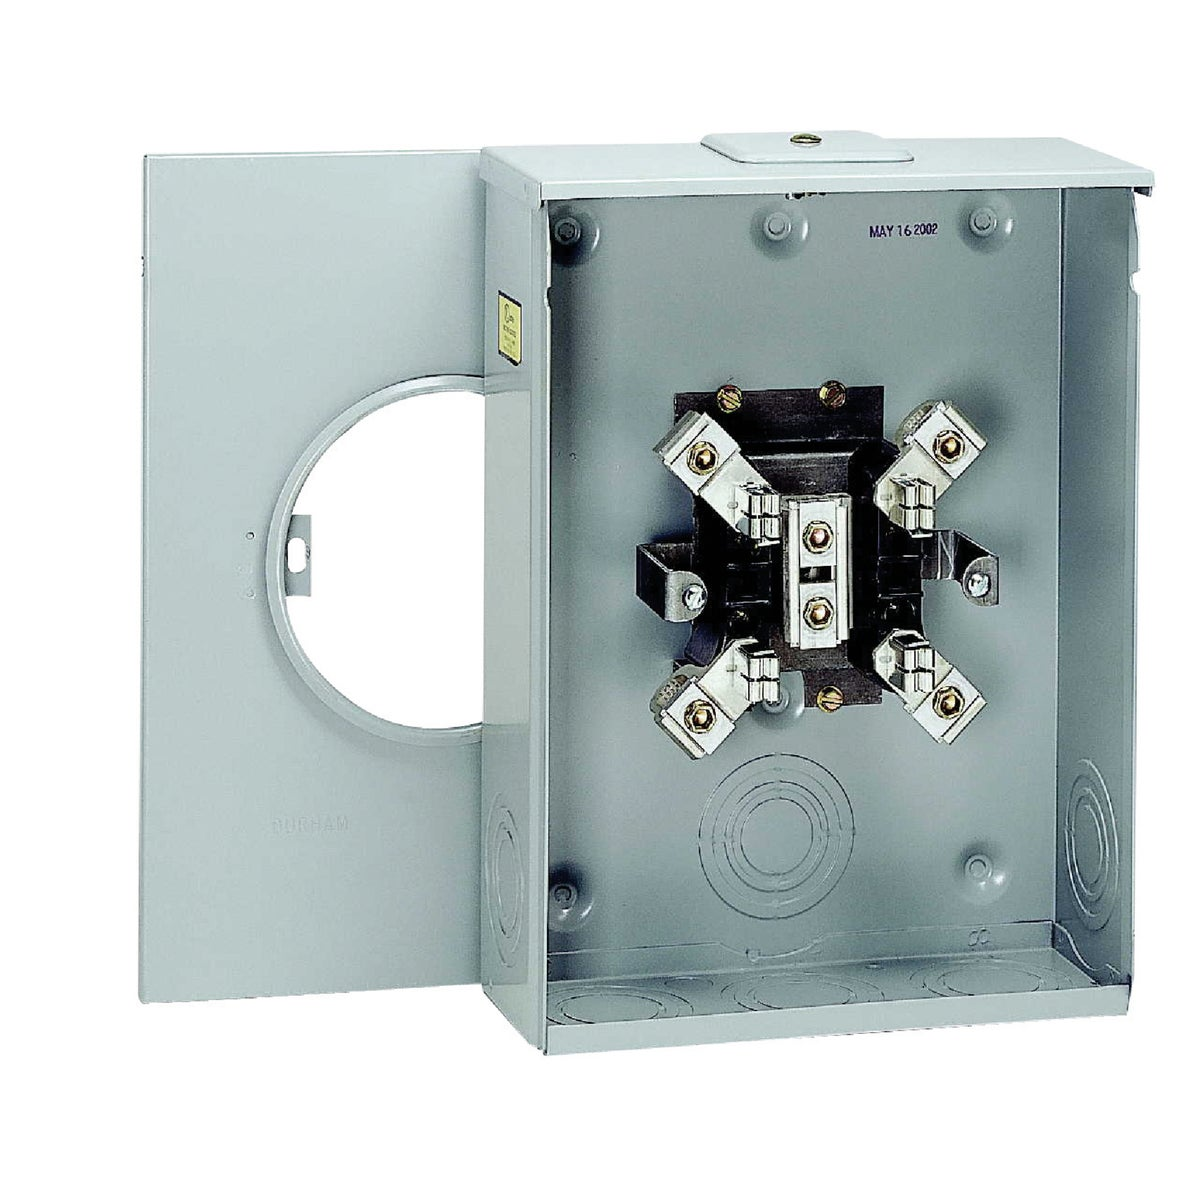 200A METER SOCKET - UNRRS213AEUSE by Eaton Corporation